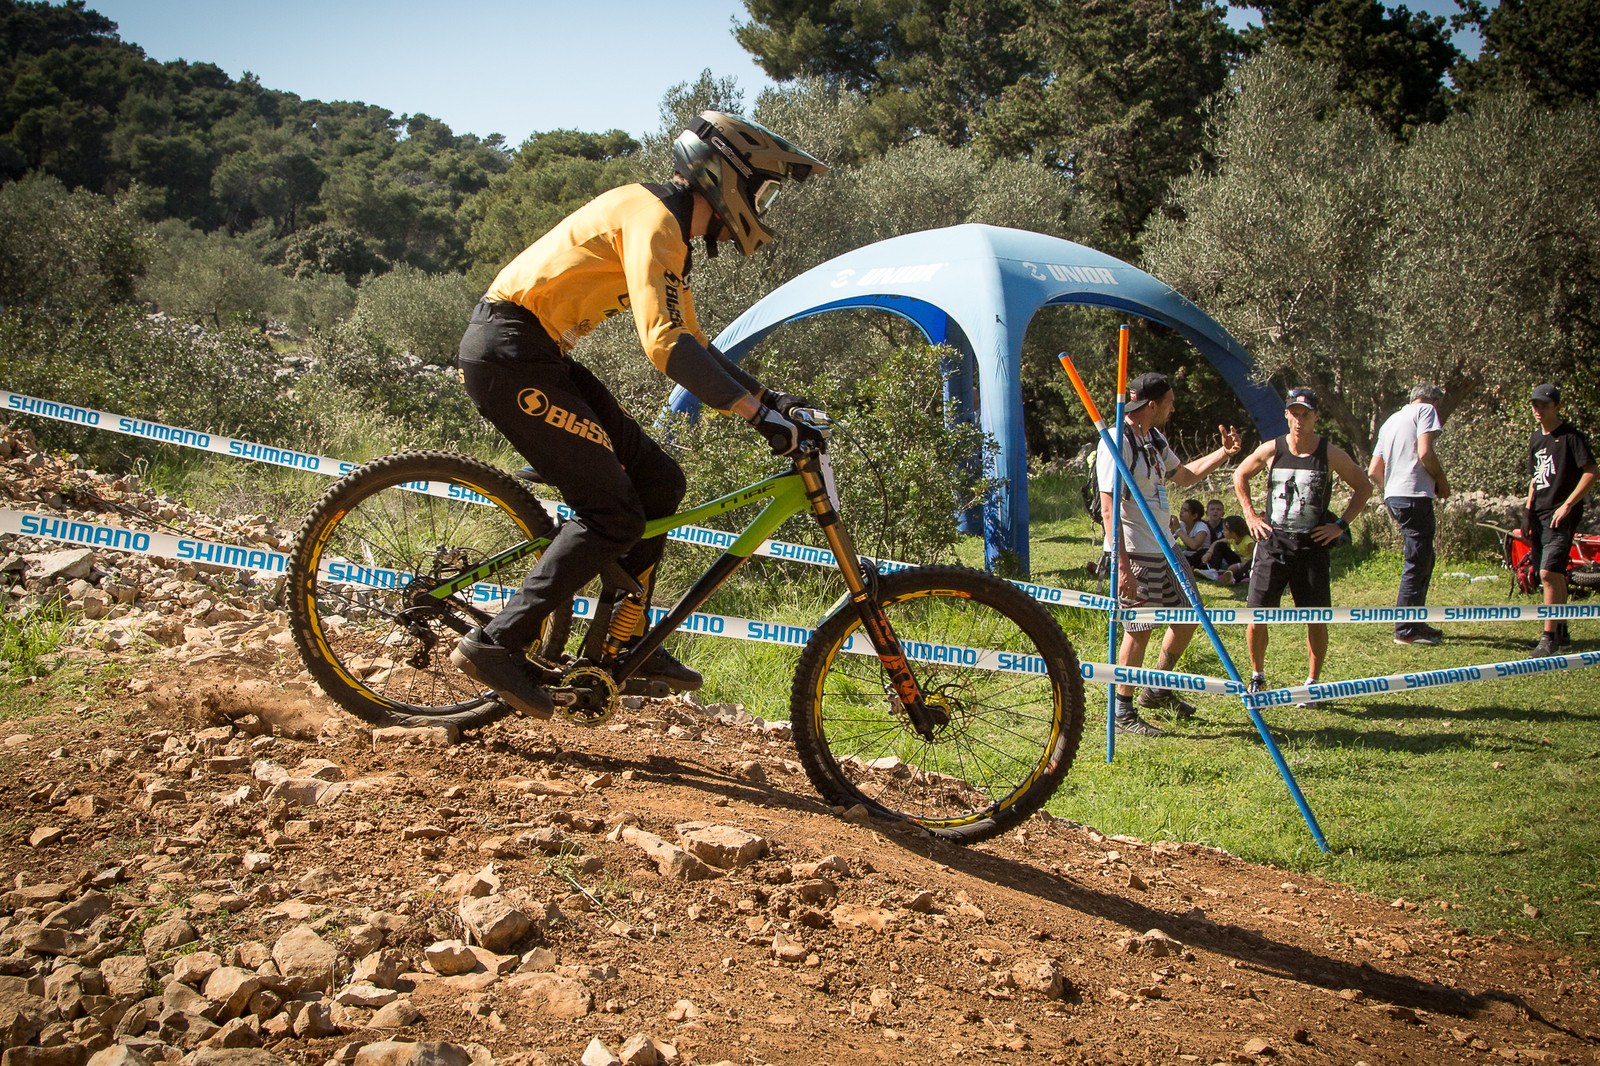 34-Degree Head Angle - G-Out Project - Croatia World Cup DH - Mountain Biking Pictures - Vital MTB